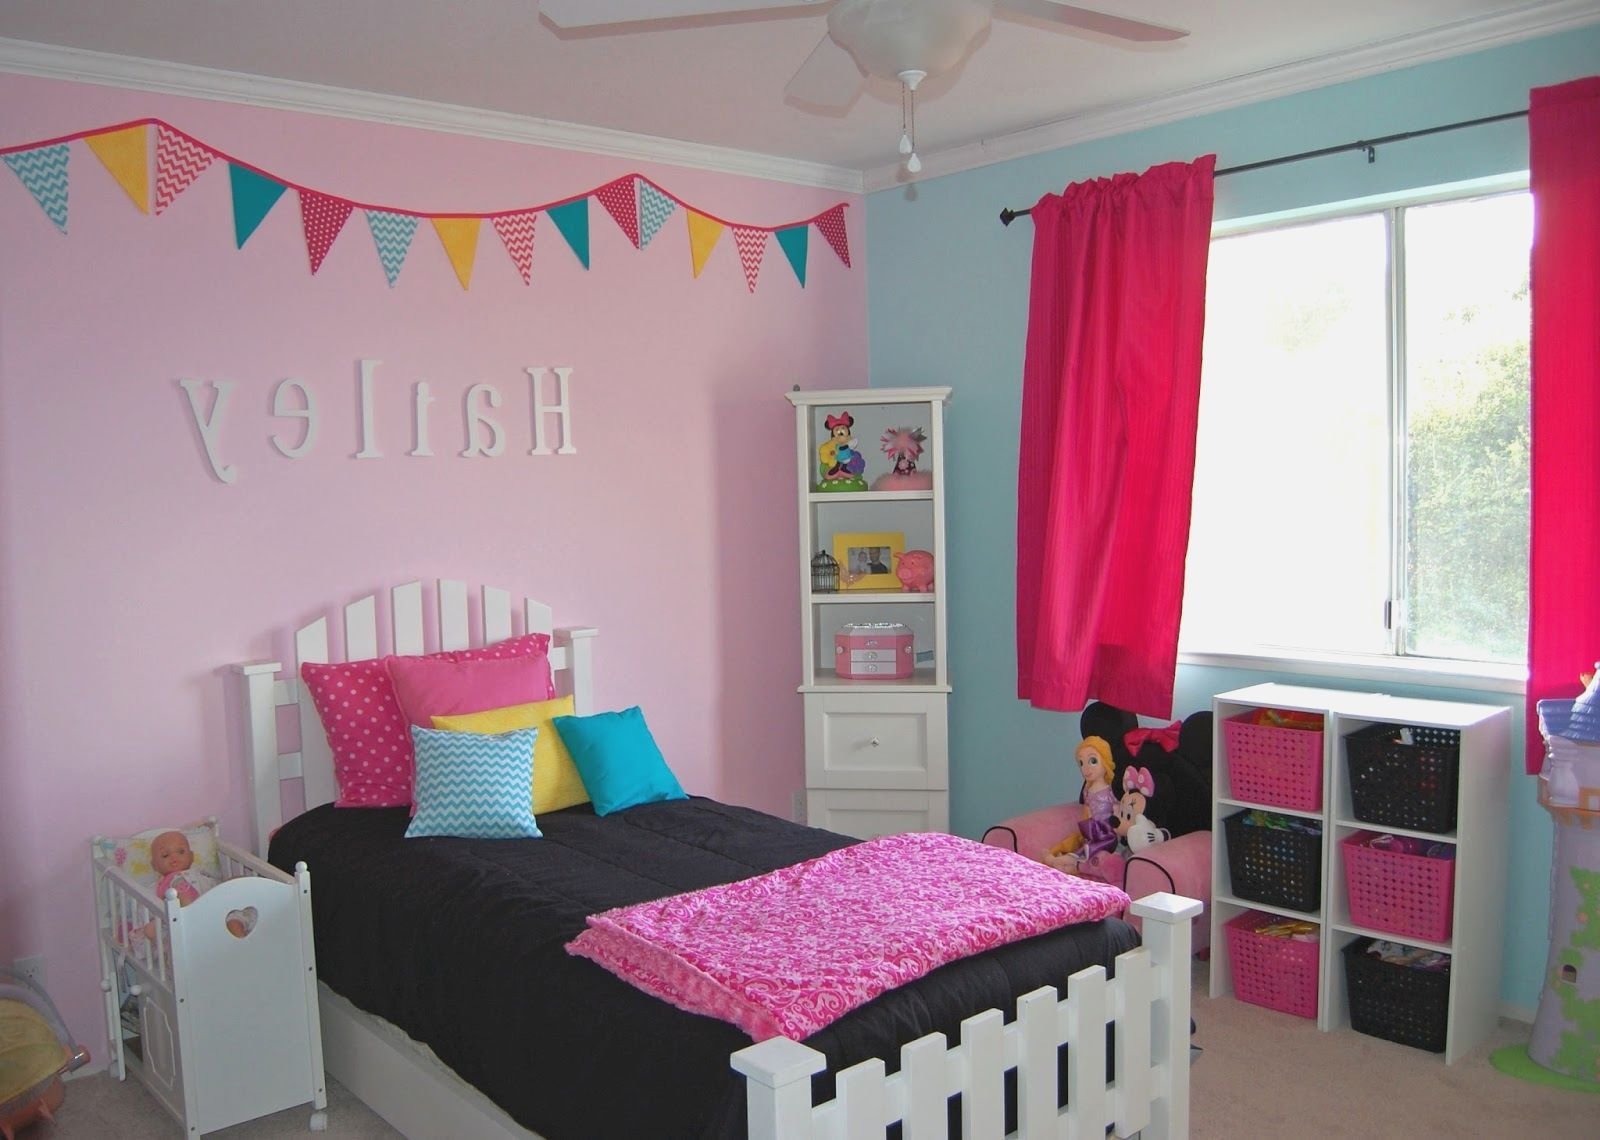 Bedroom ideas for 10 yr old girl more picture bedroom for Room decor for 12 year olds